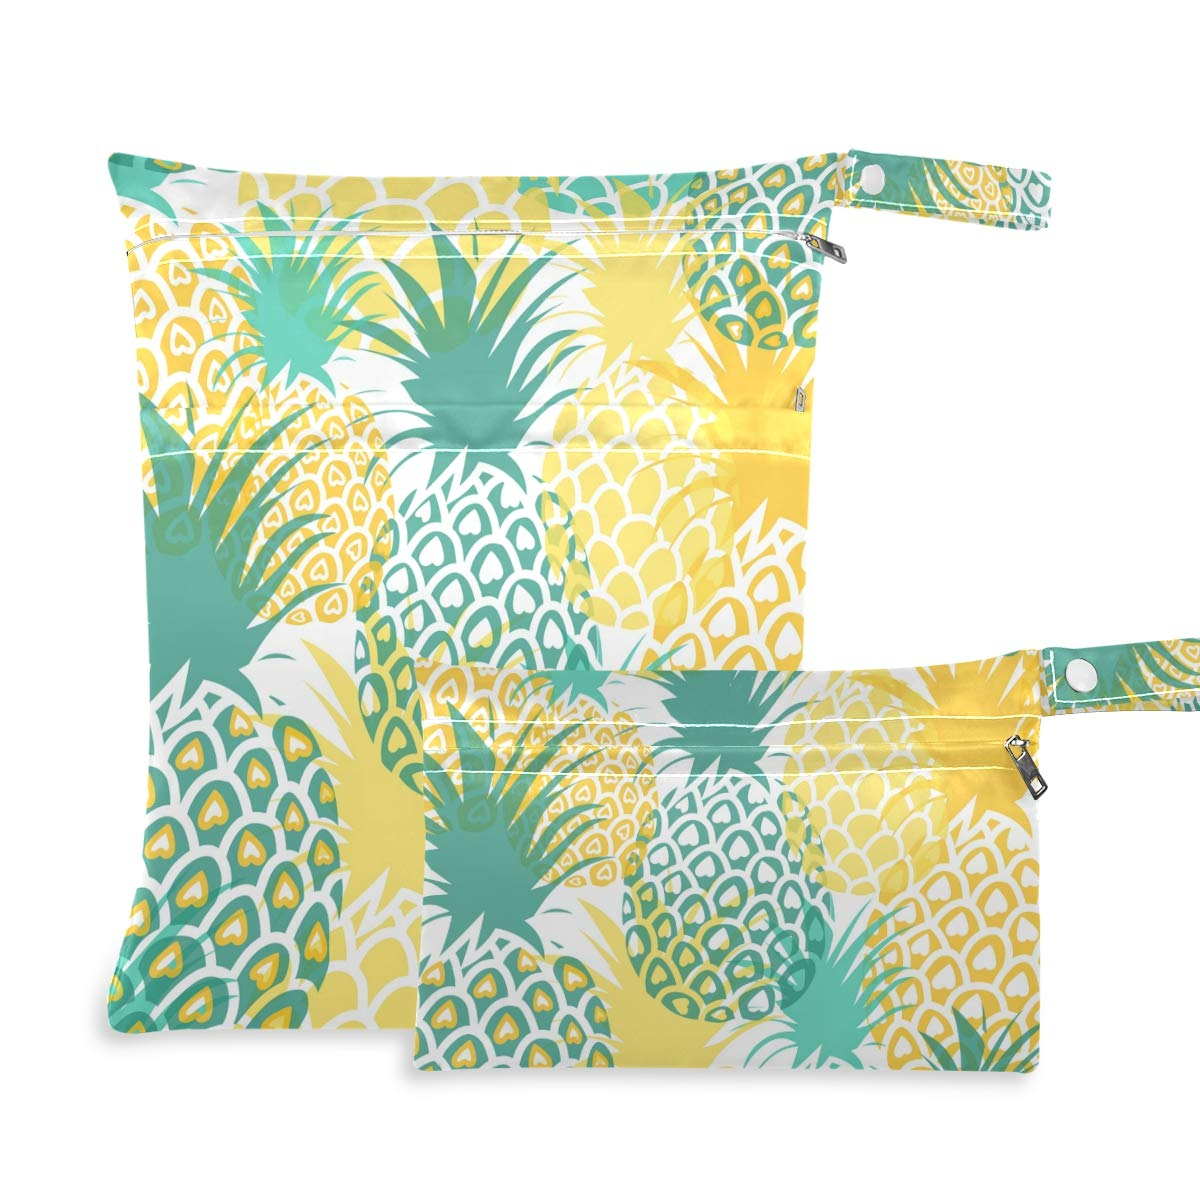 Qilmy 2pcs Pineapple Cloth Diaper Wet Dry Bag Waterproof Reusable Wet Dry Organizer with Zipper for Travel, Beach, Pool, Diapers, Gym Clothes, Wet Swimsuits